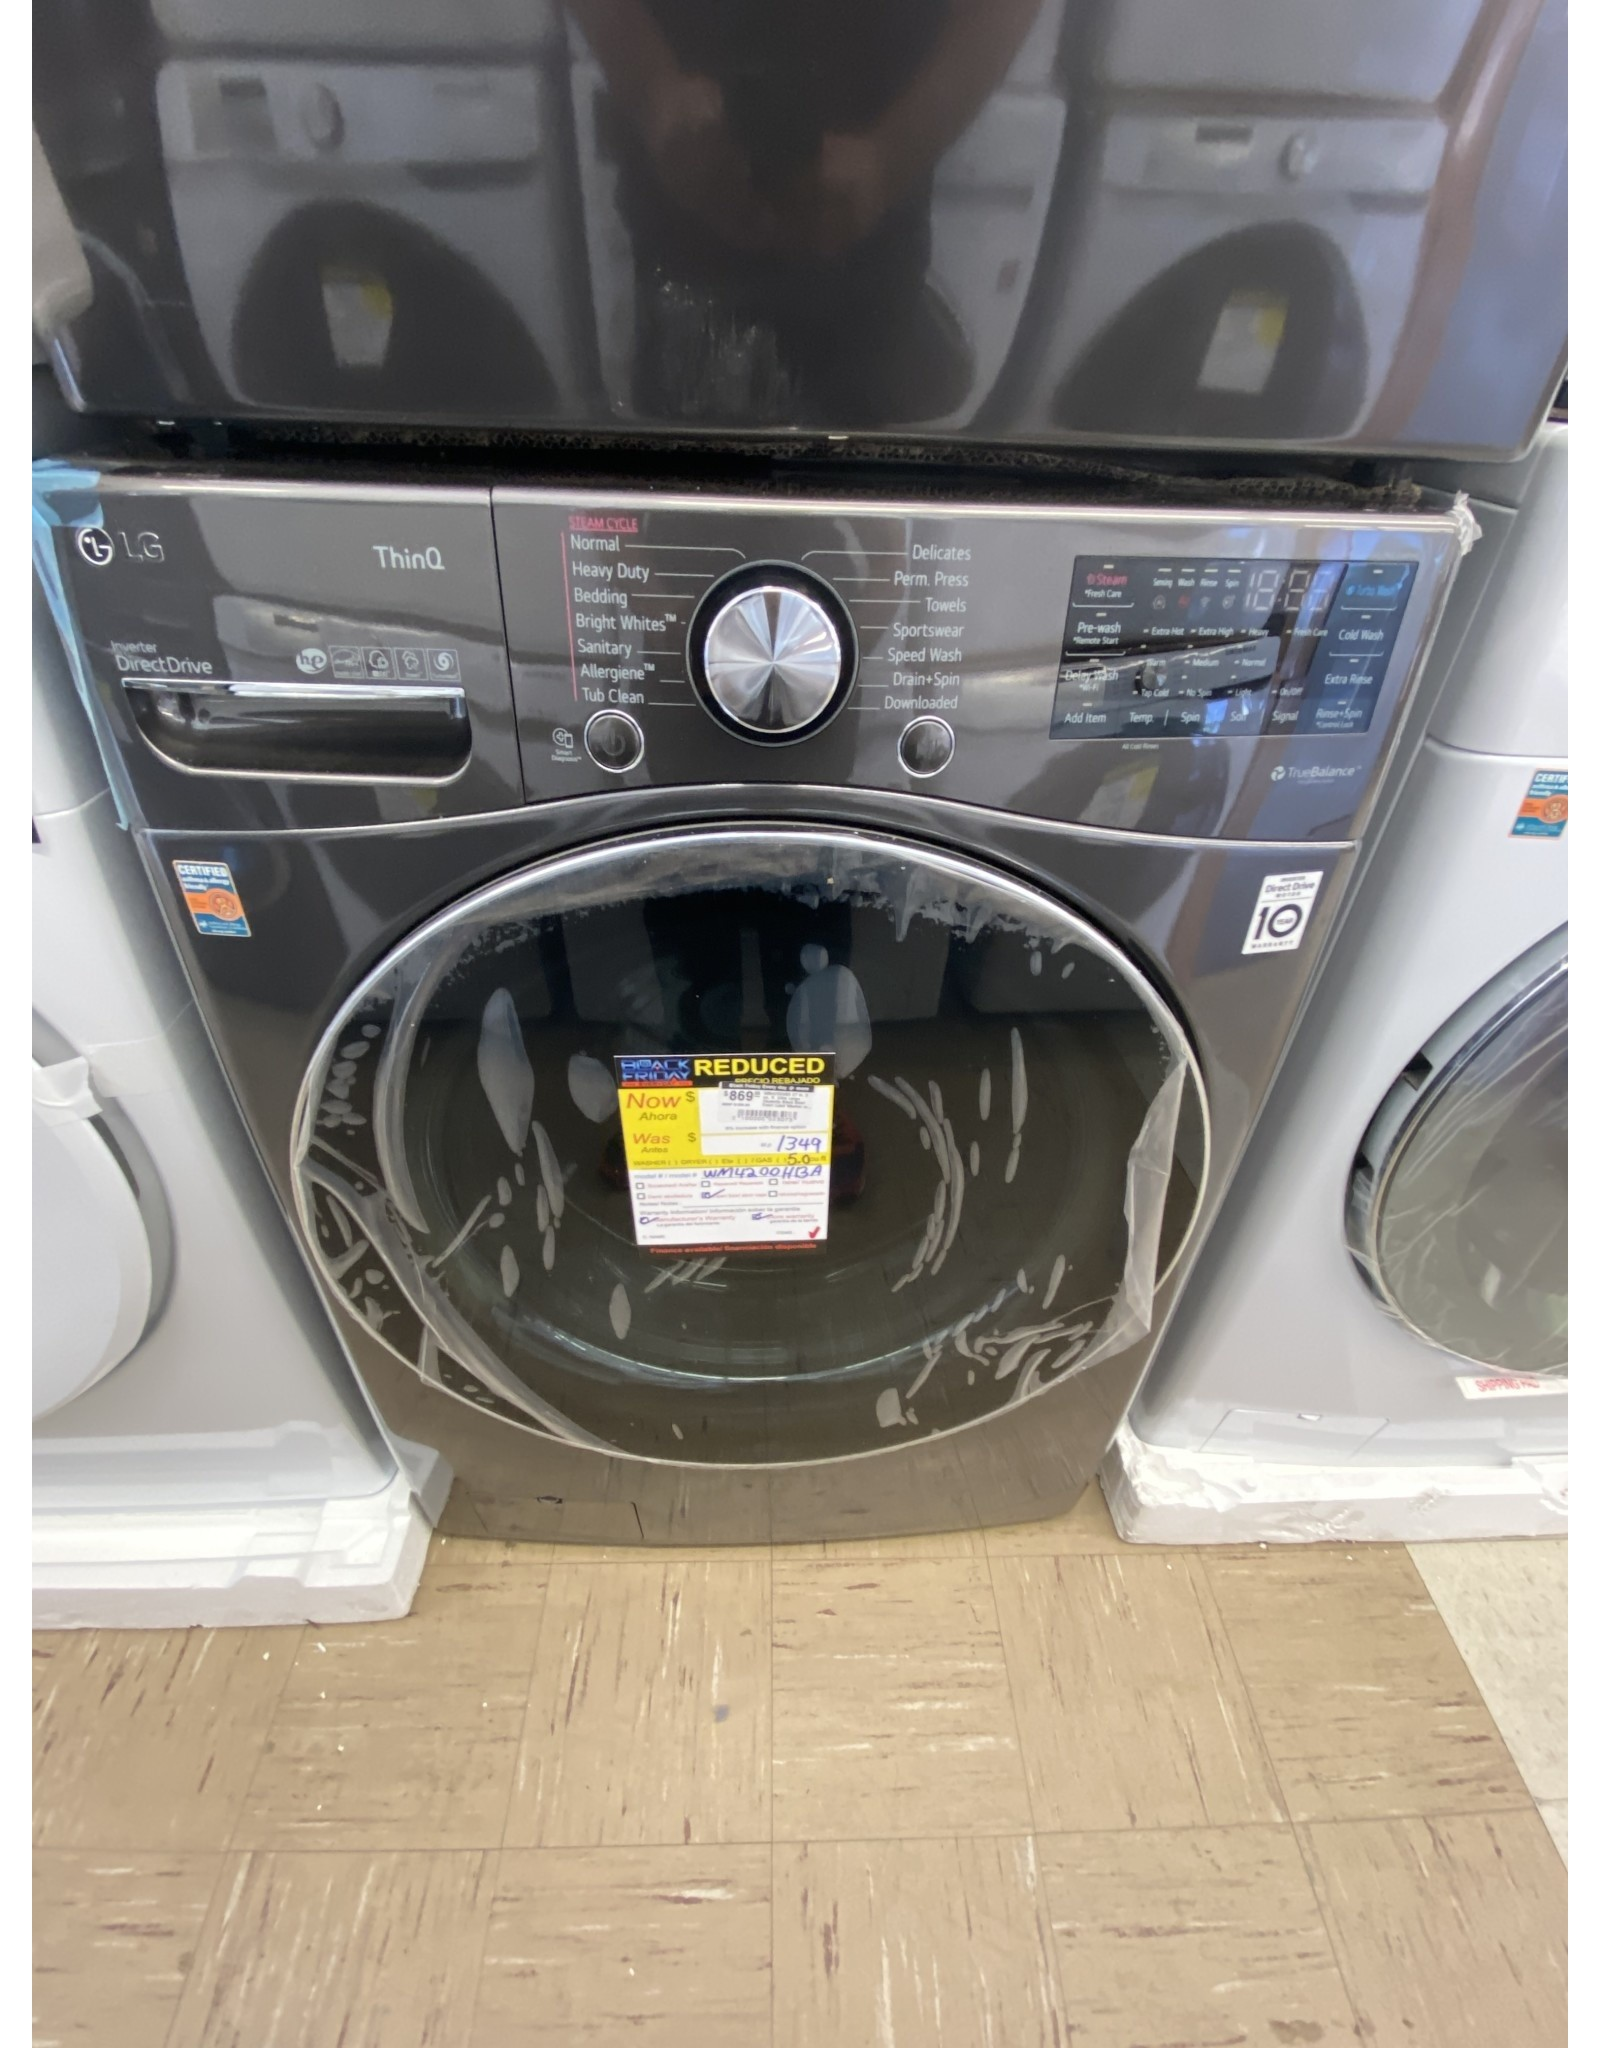 LG Electronics WM4200HBA 27 in. 5 cu. ft. Ultra Large Capacity Black Steel Front Load Washer with Turbo Wash Steam & Wi-Fi Connectivity